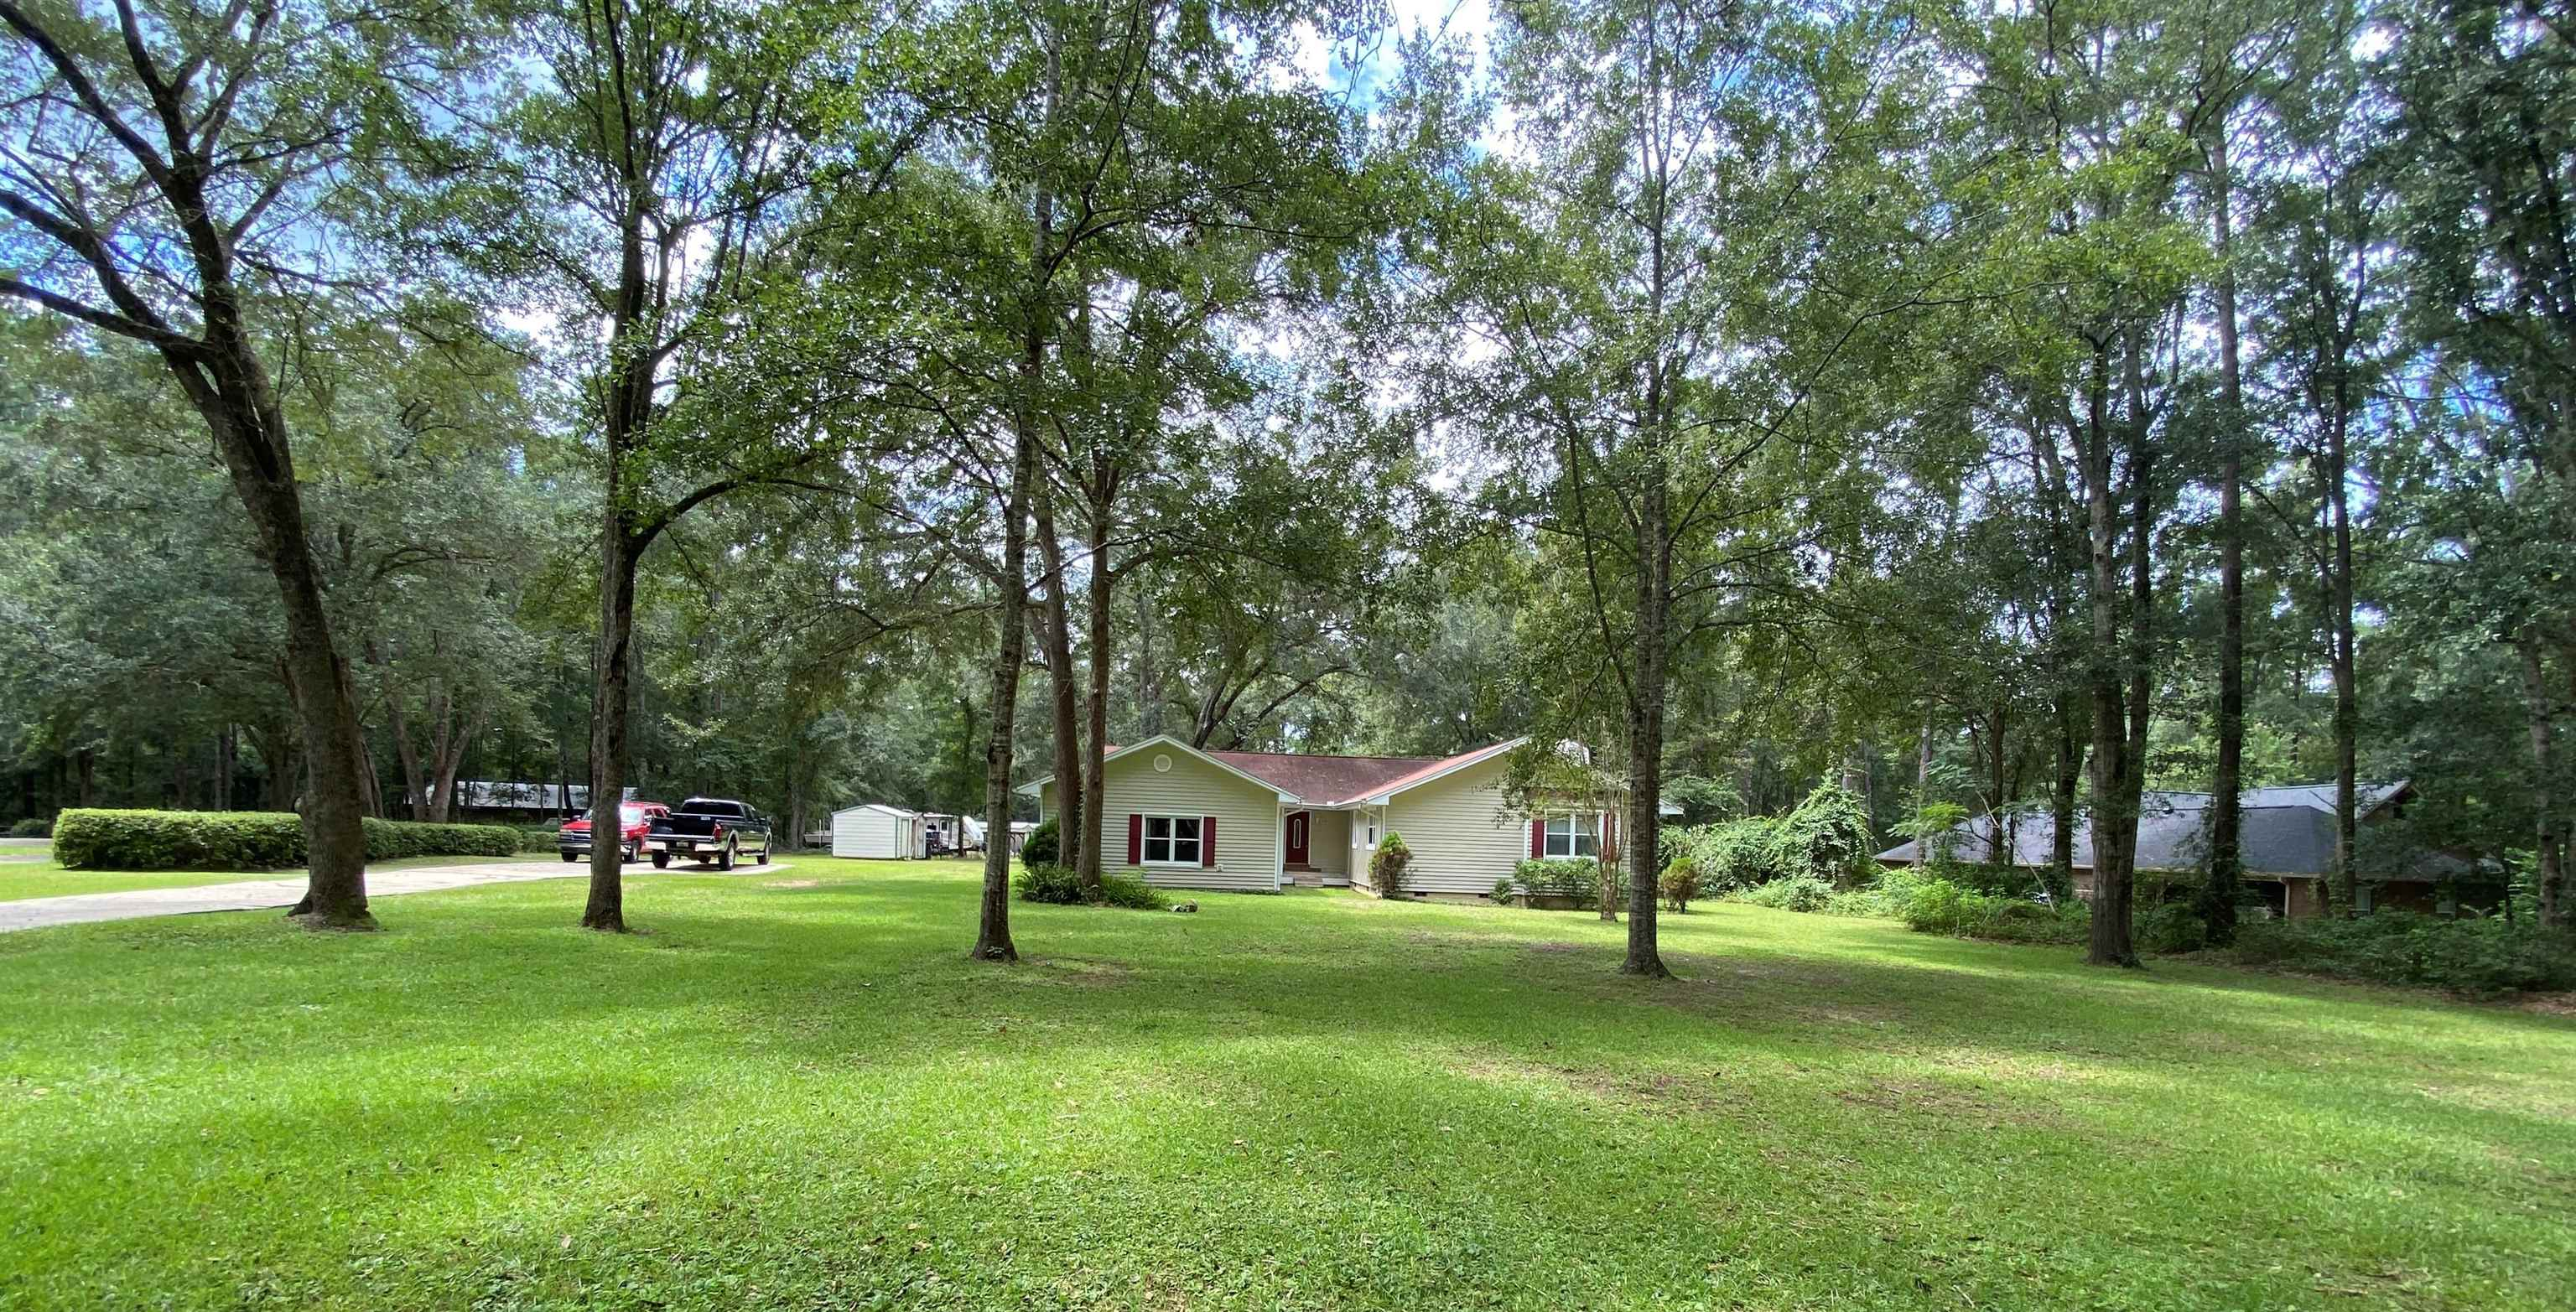 1.22 private acres with a large well maintained family home and a lot of living space and square footage  ($137 sf). RV and boat parking complete with 30 amp electrical service, two 12x20 storage buildings with electricity, covered carport shed, and other storage buildings to remain. Ample room for a pool and/or build more living space/garage. The property backs up to the Miccosukee Greenway so never a back door neighbor! The home itself has a split bedroom, 2 living room areas plus an enormous recreation/man cave/great room with gorgeous pool table and bar. Newly enclosed heated/cooled sunroom with hottub. Enormous master bedroom with updated bath and walk-in tile shower.  10,000 watt gas propane generator included. Quiet neighborhood and great neighbors!!!